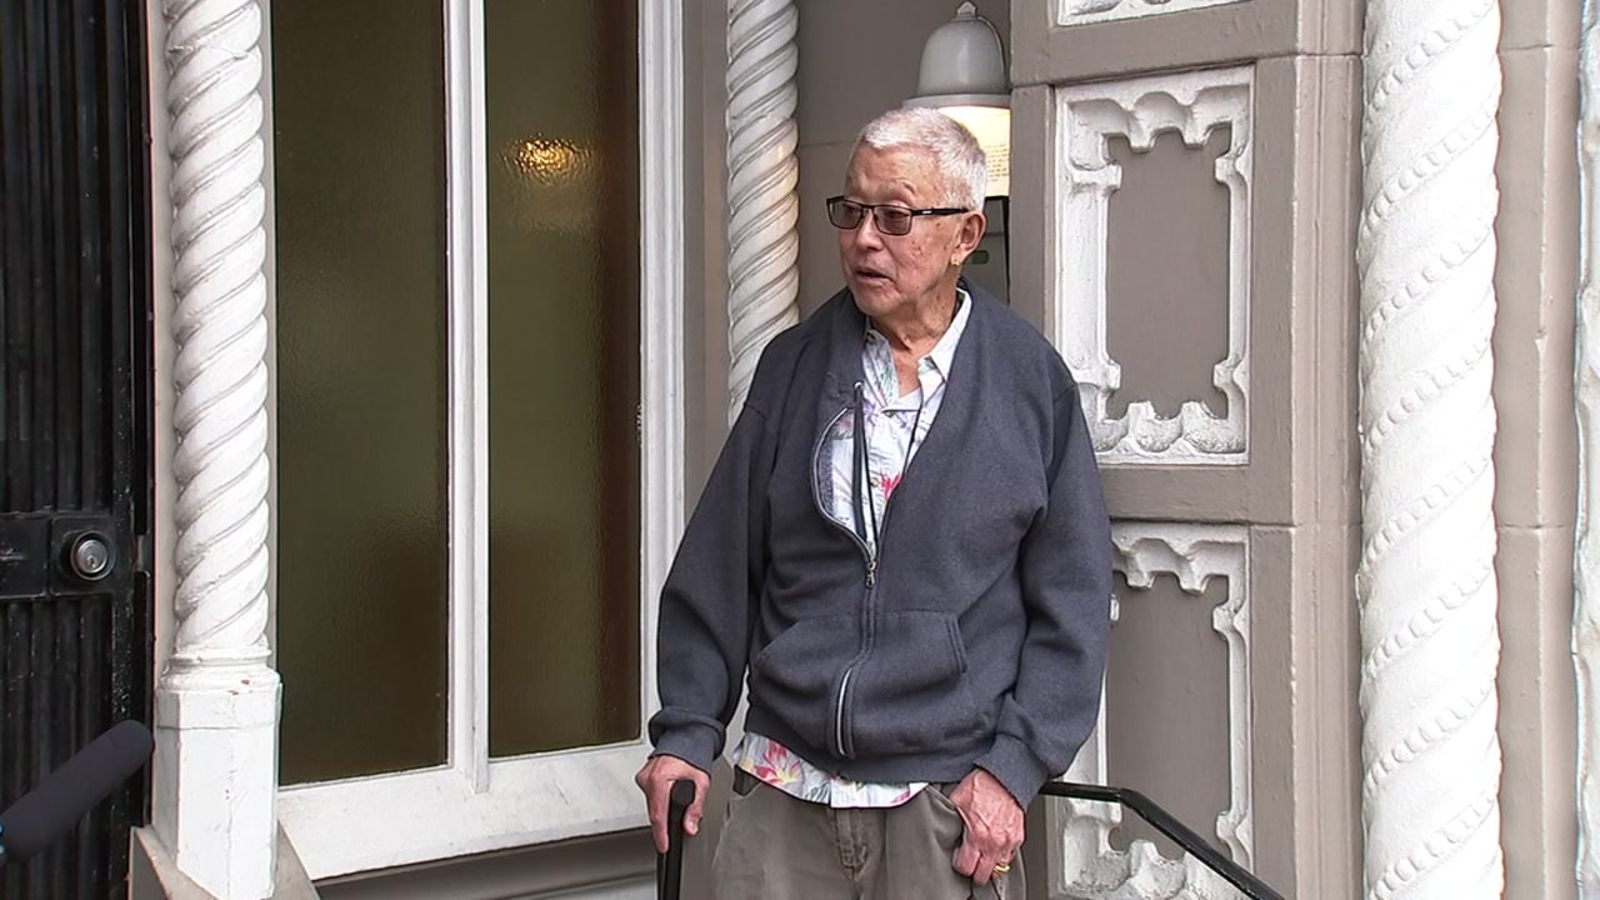 abc7.com: 83-year-old Asian man says drug dealer came to his aid after San Francisco attack